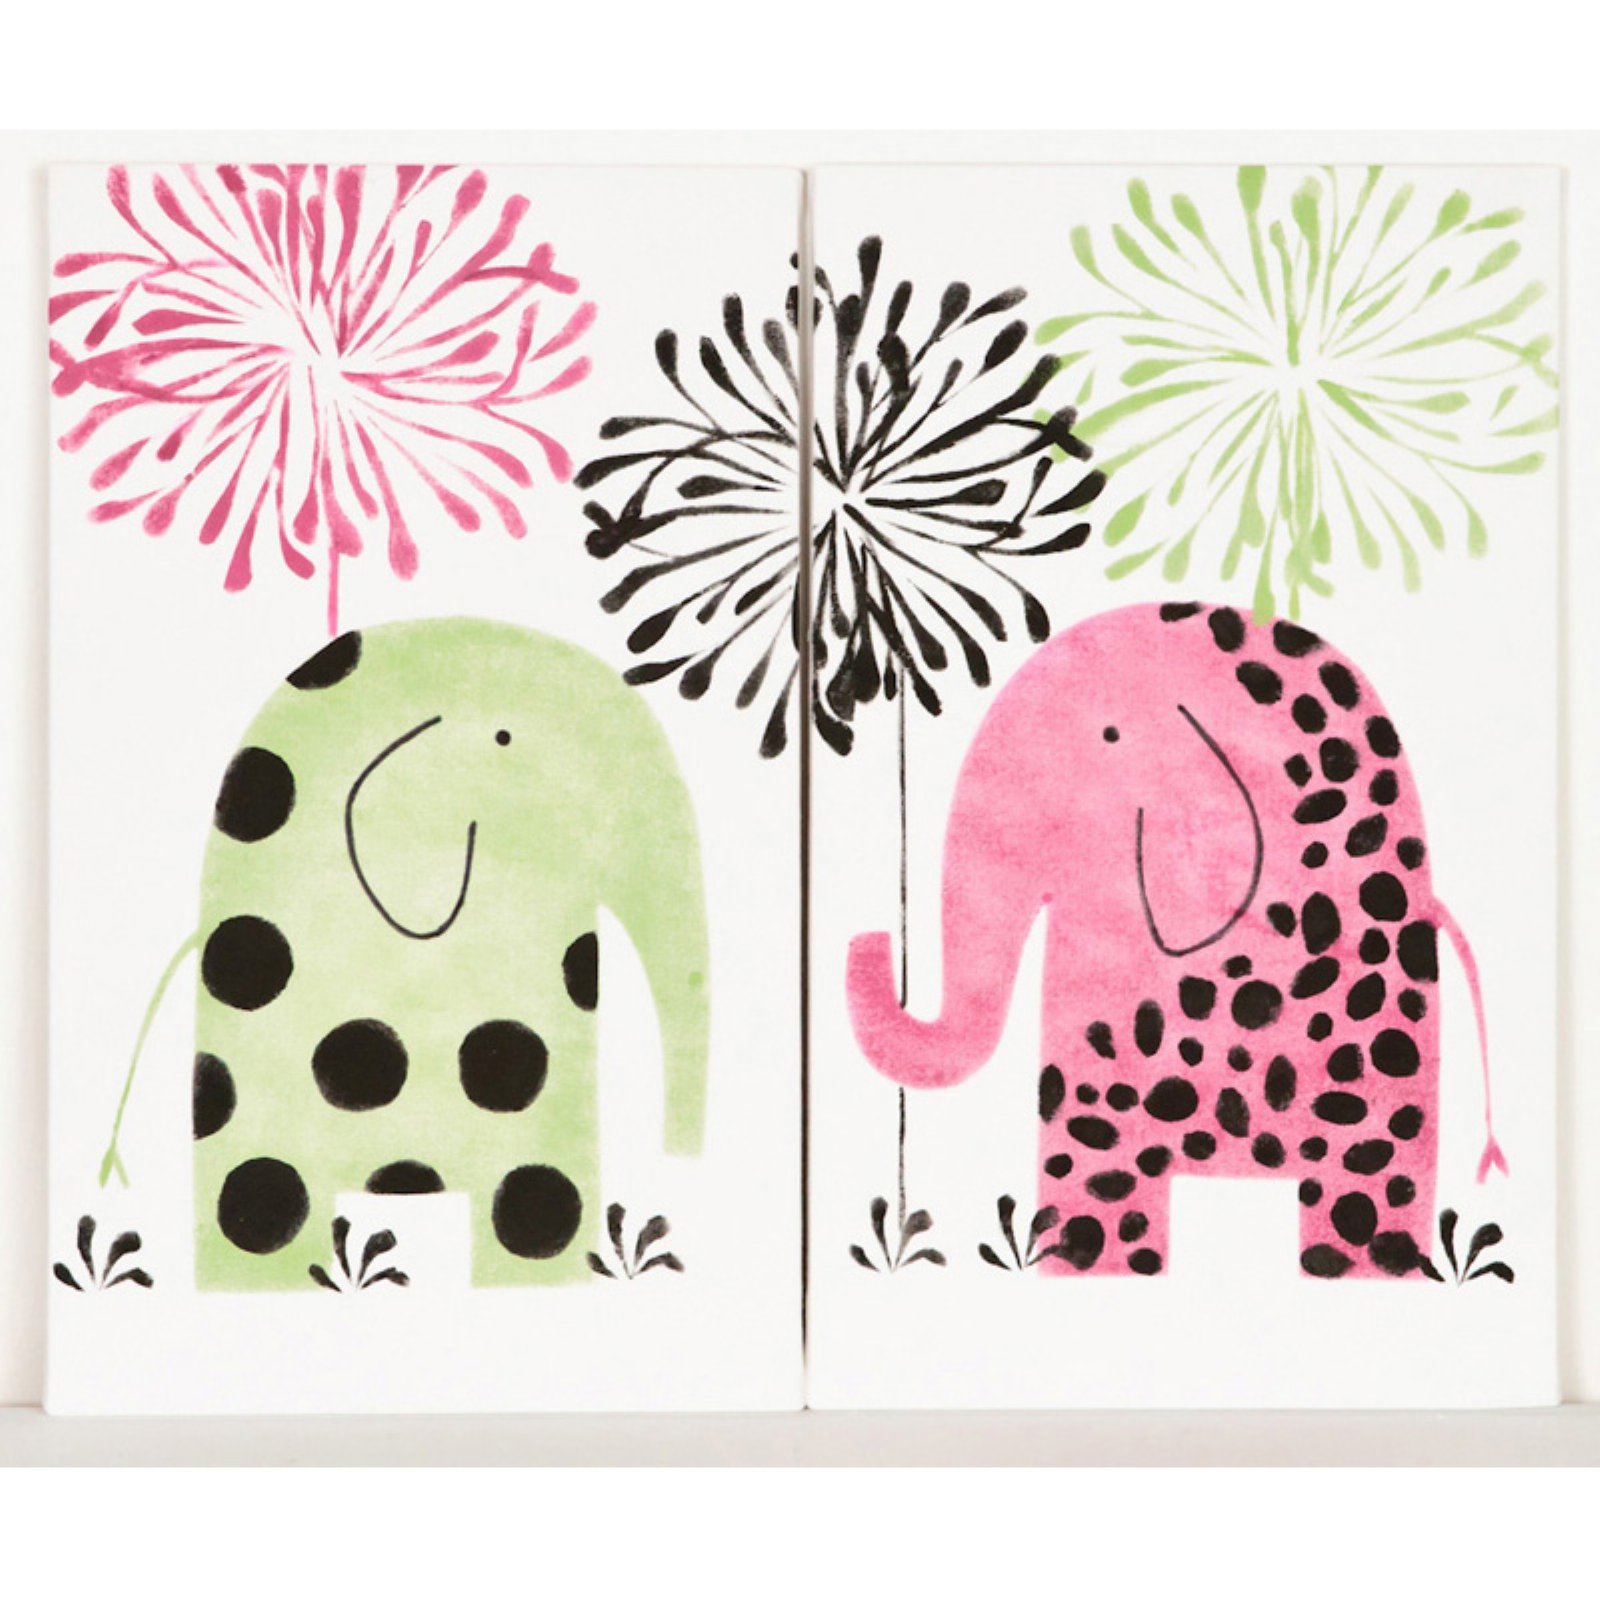 Cotton Tale Designs Hottsie Dottsie Wall Art - Set of 2